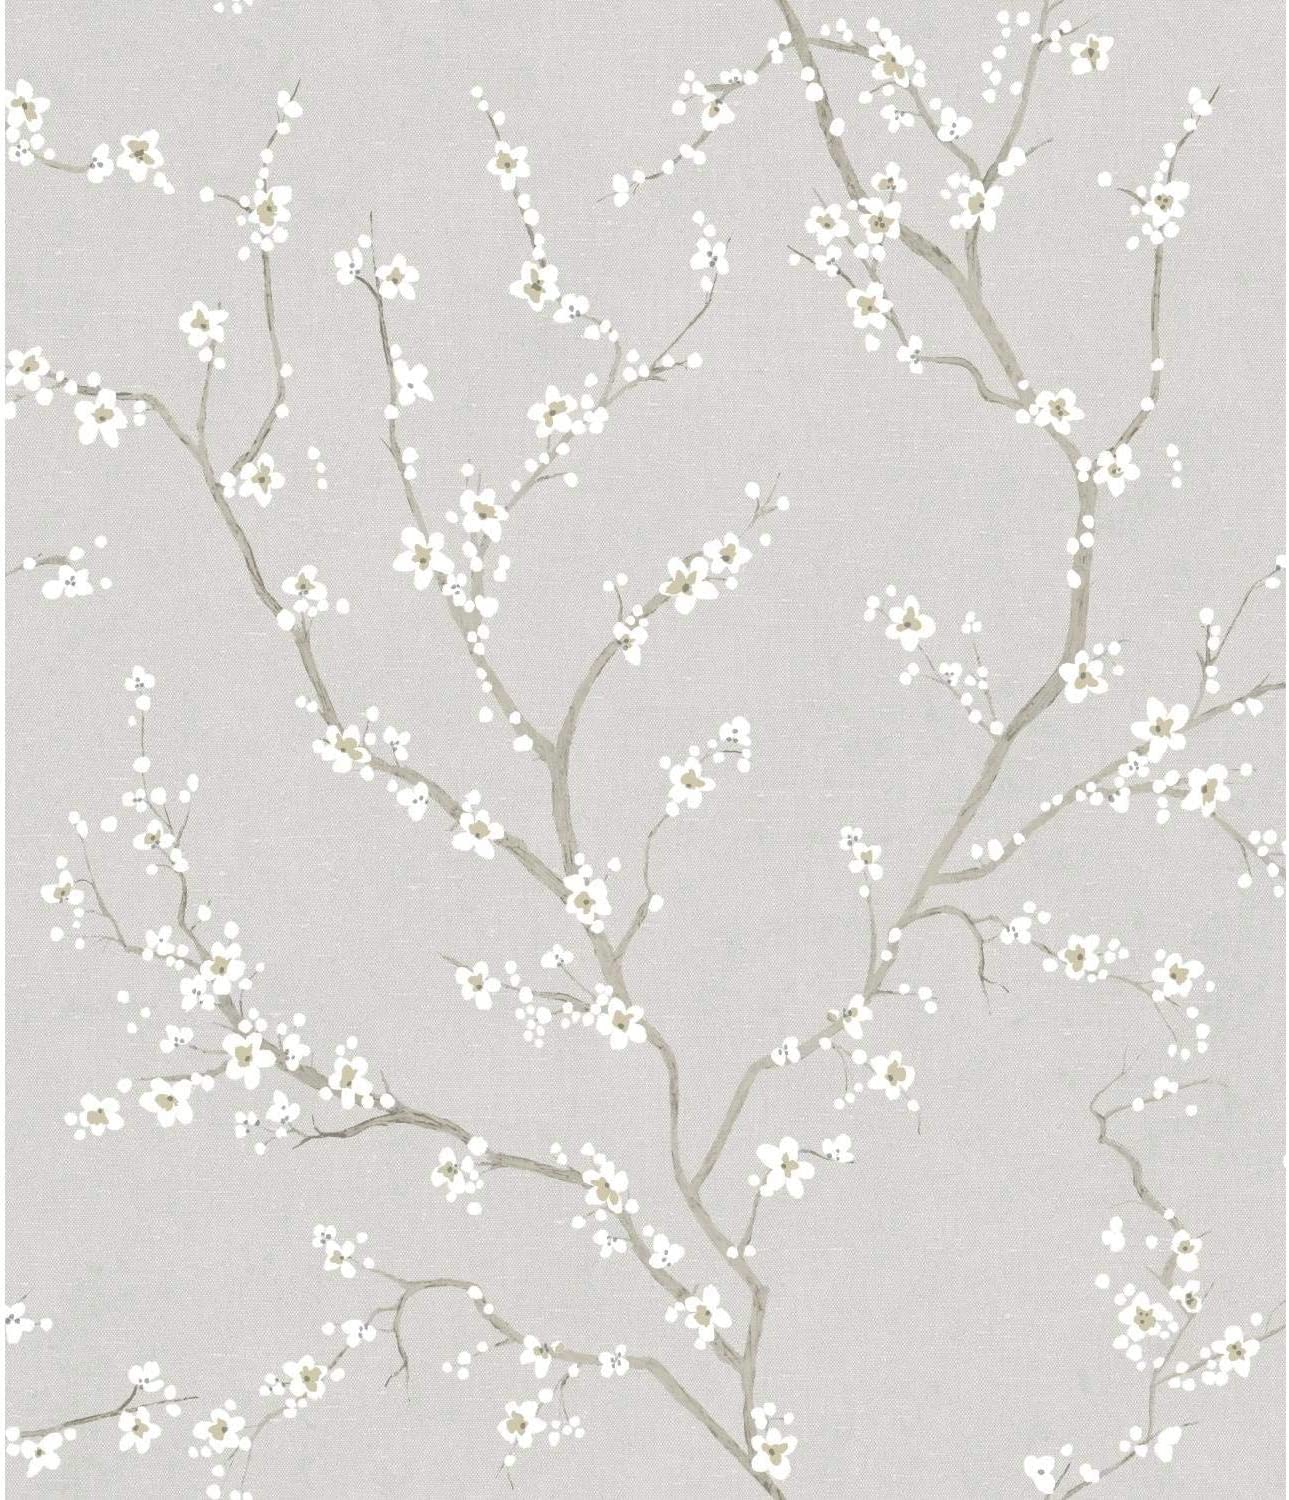 RoomMates Grey Cherry Blossom Peel and Stick Wallpaper,Gray